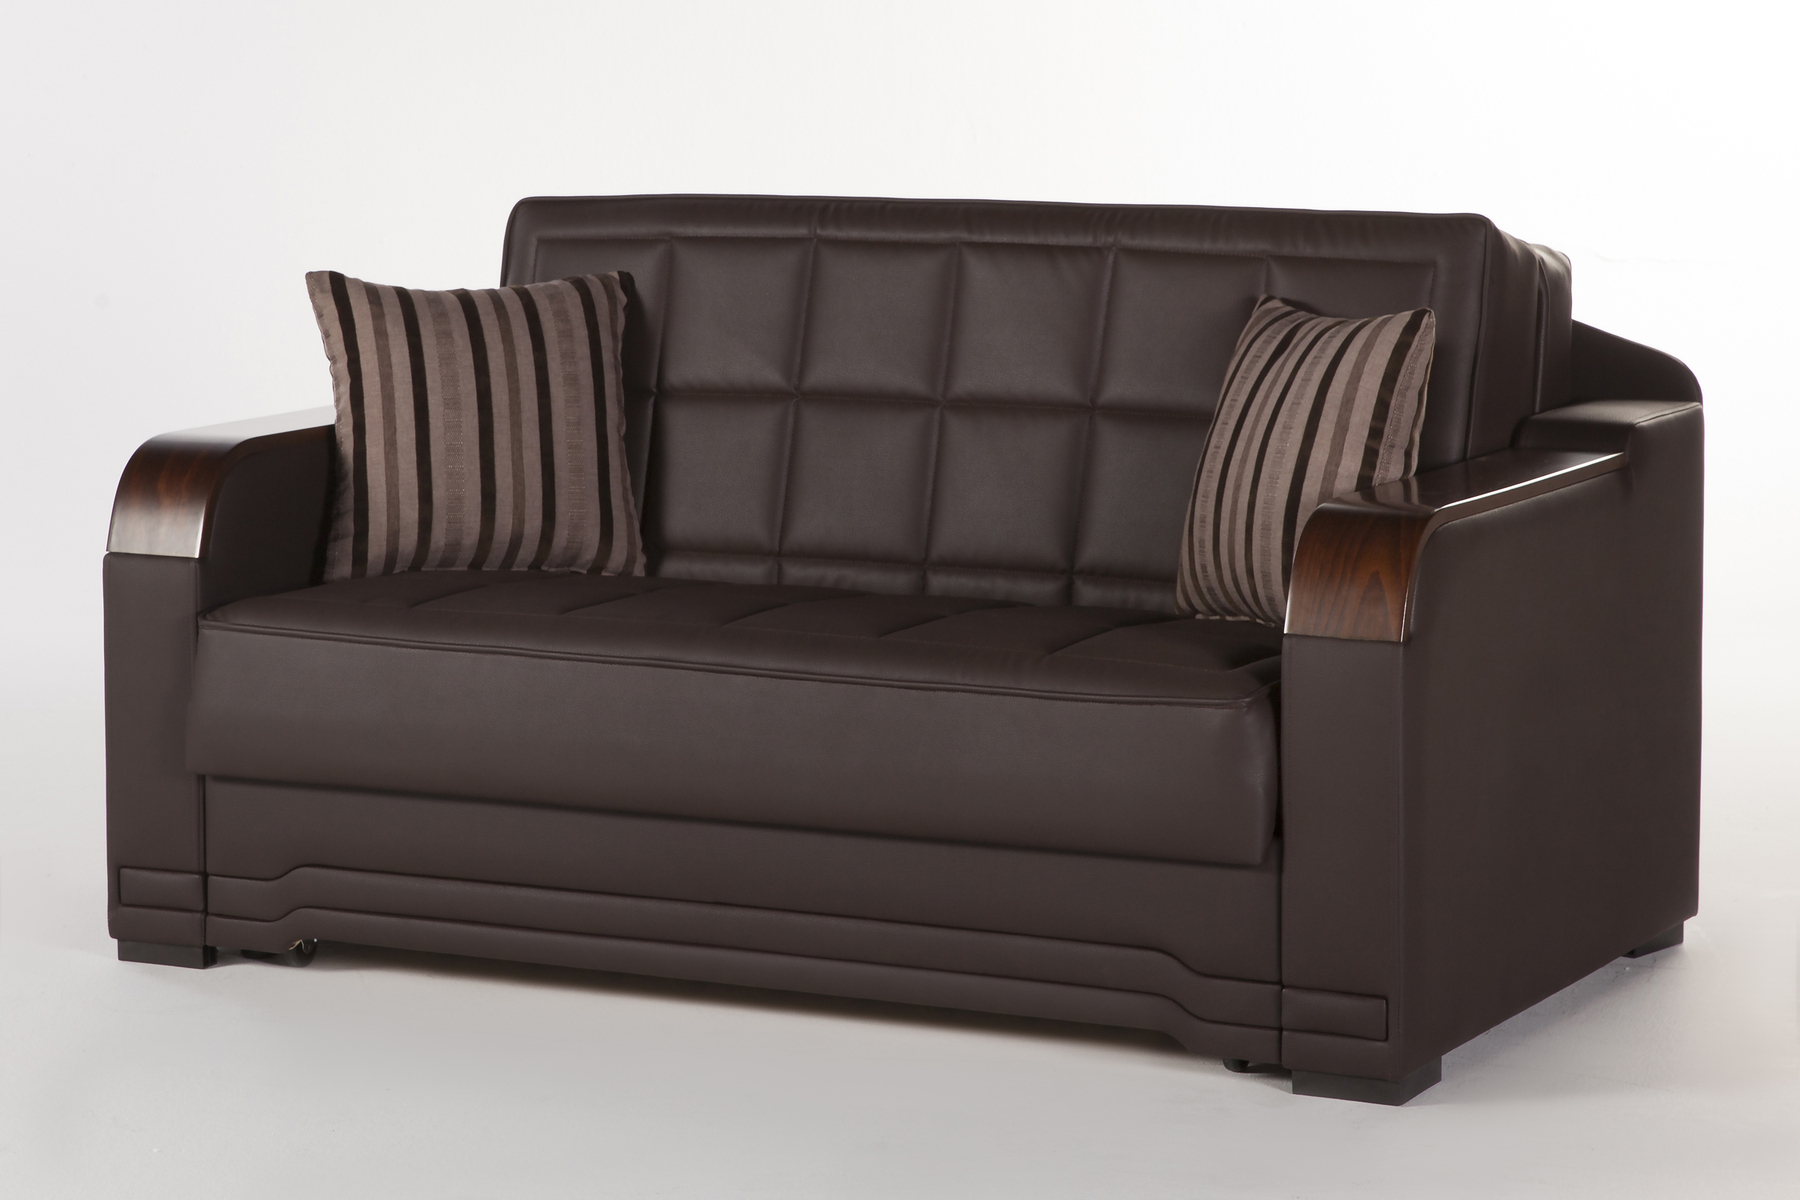 Willow dark brown loveseat sleeper by sunset Bed divan